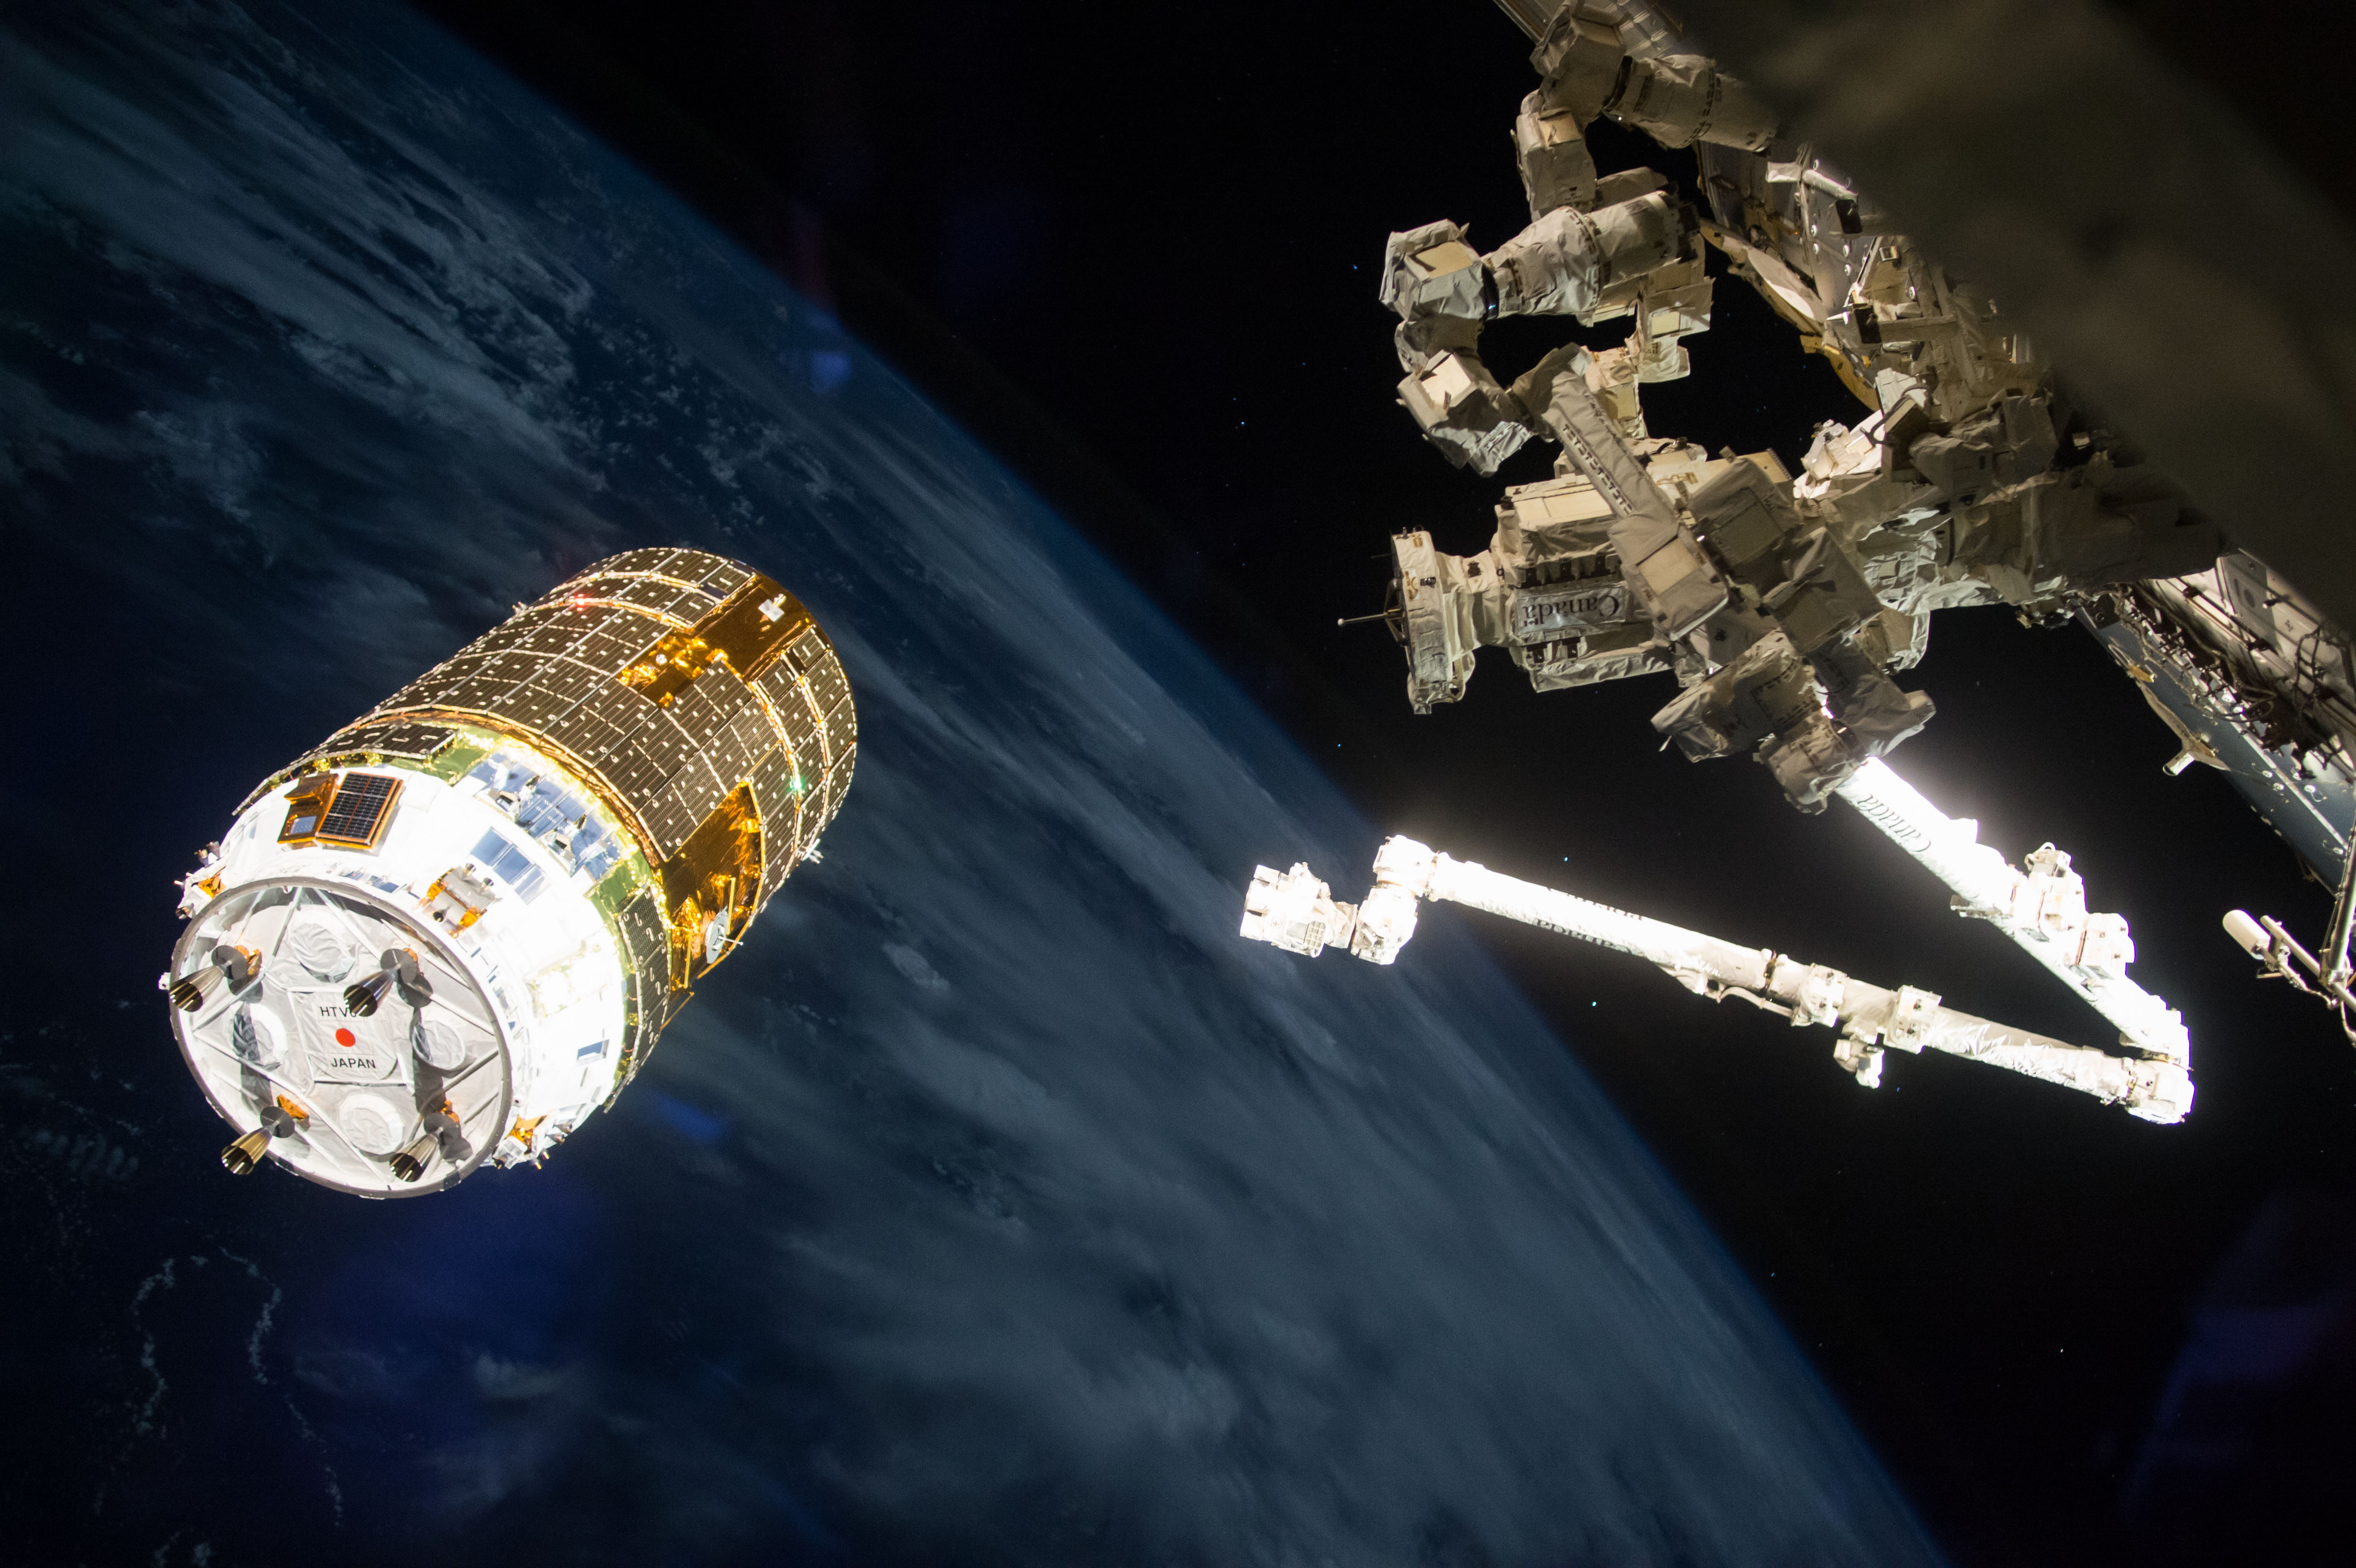 The Japanese HTV-6 cargo vehicle